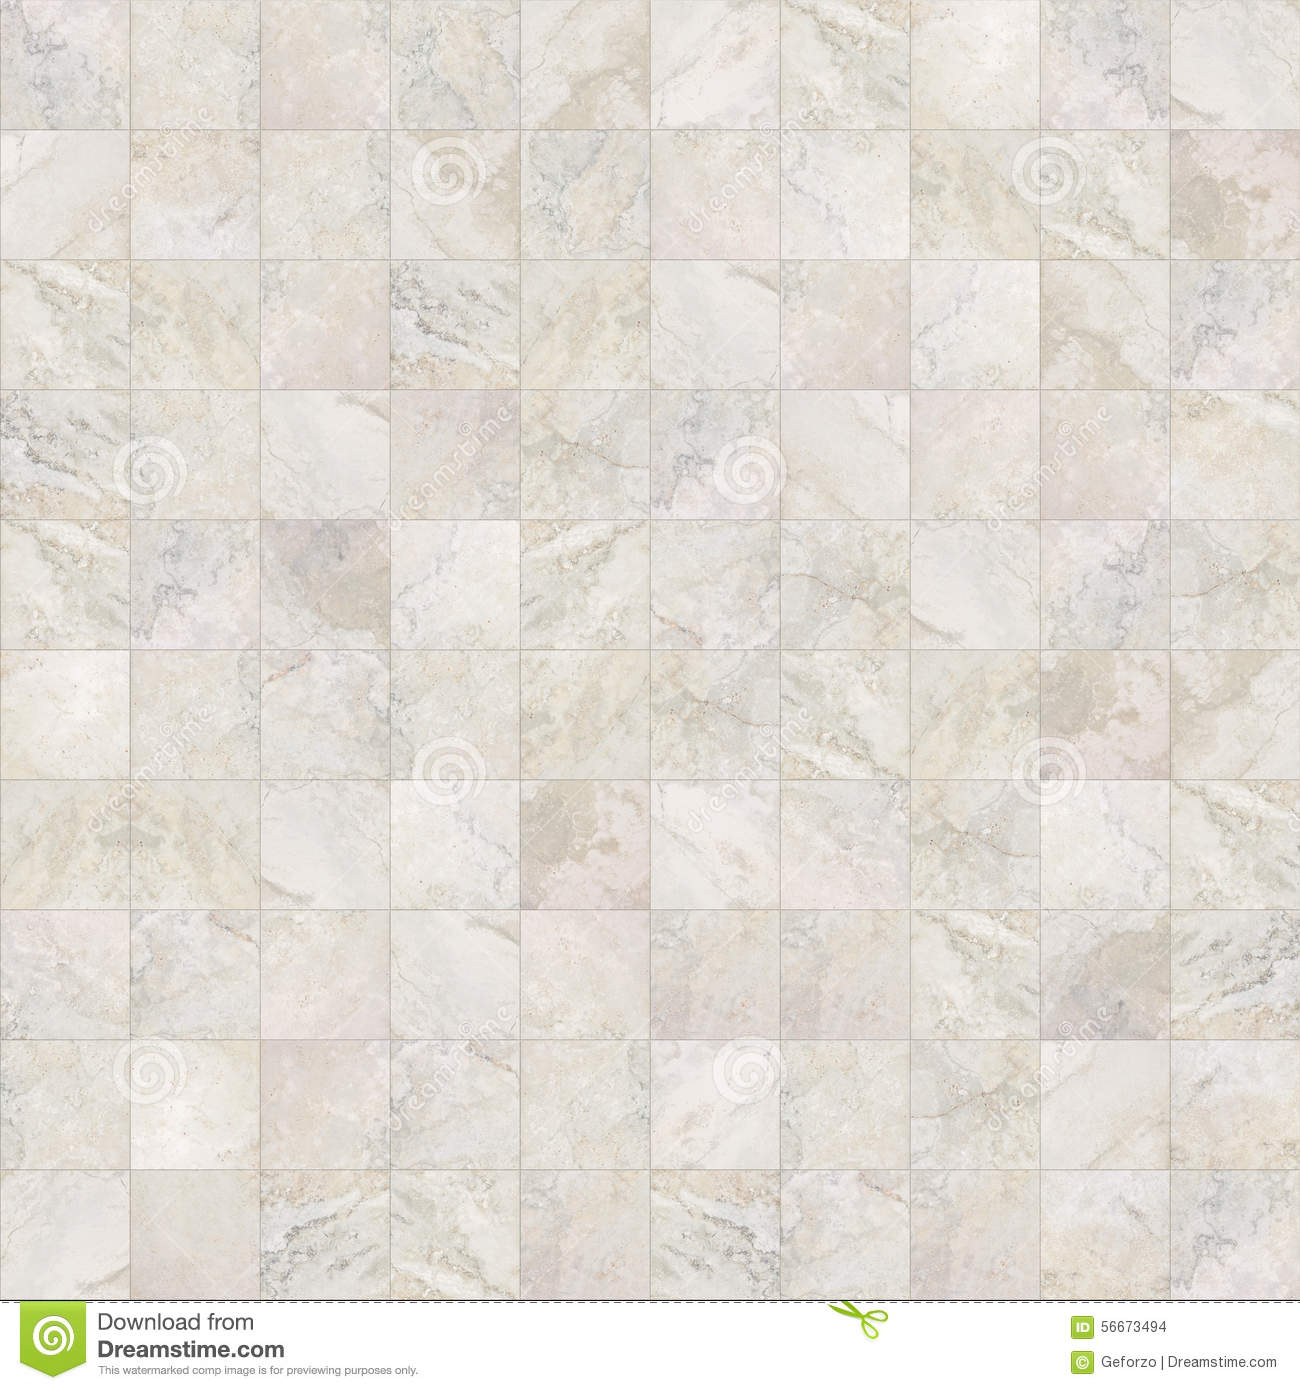 Square Seamless Marble Tiles Texture Stock Photo Image